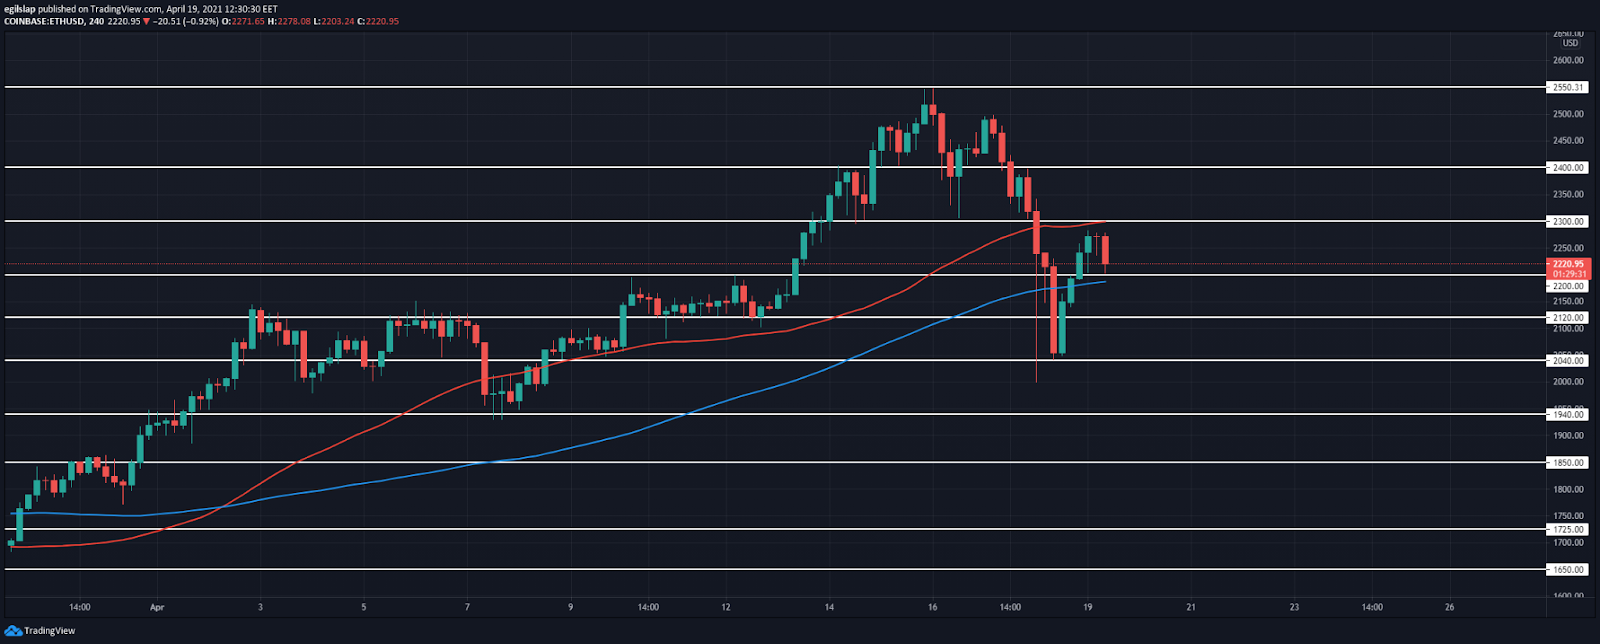 Ethereum price prediction: Ethereum fails to reach $2,300, set to move lower today